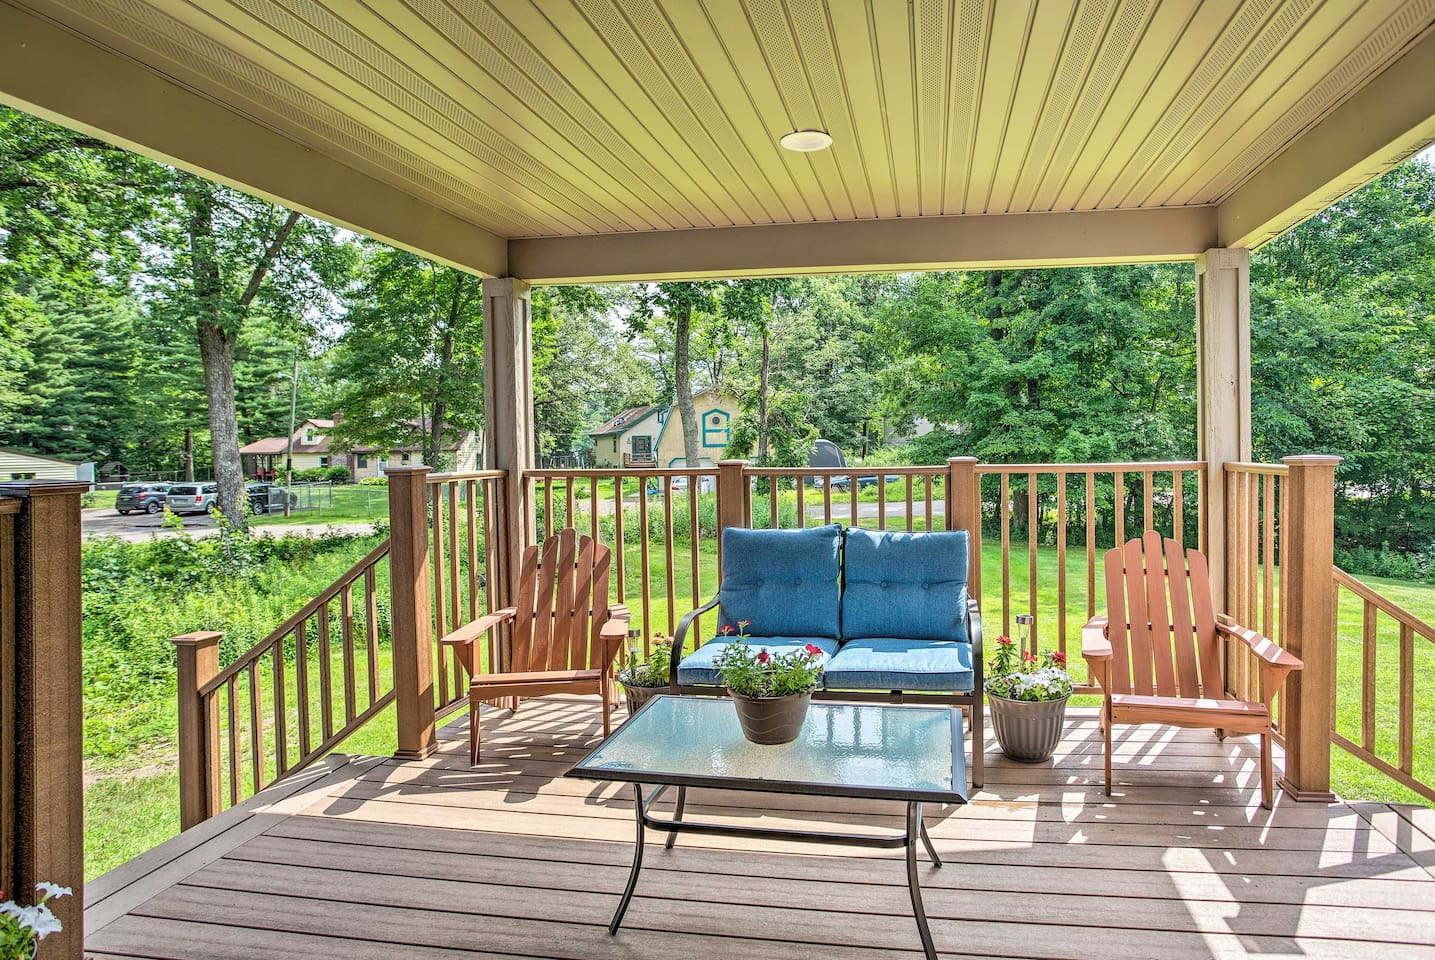 You'll love sitting on the covered porch of this Balsam Lake vacation rental.